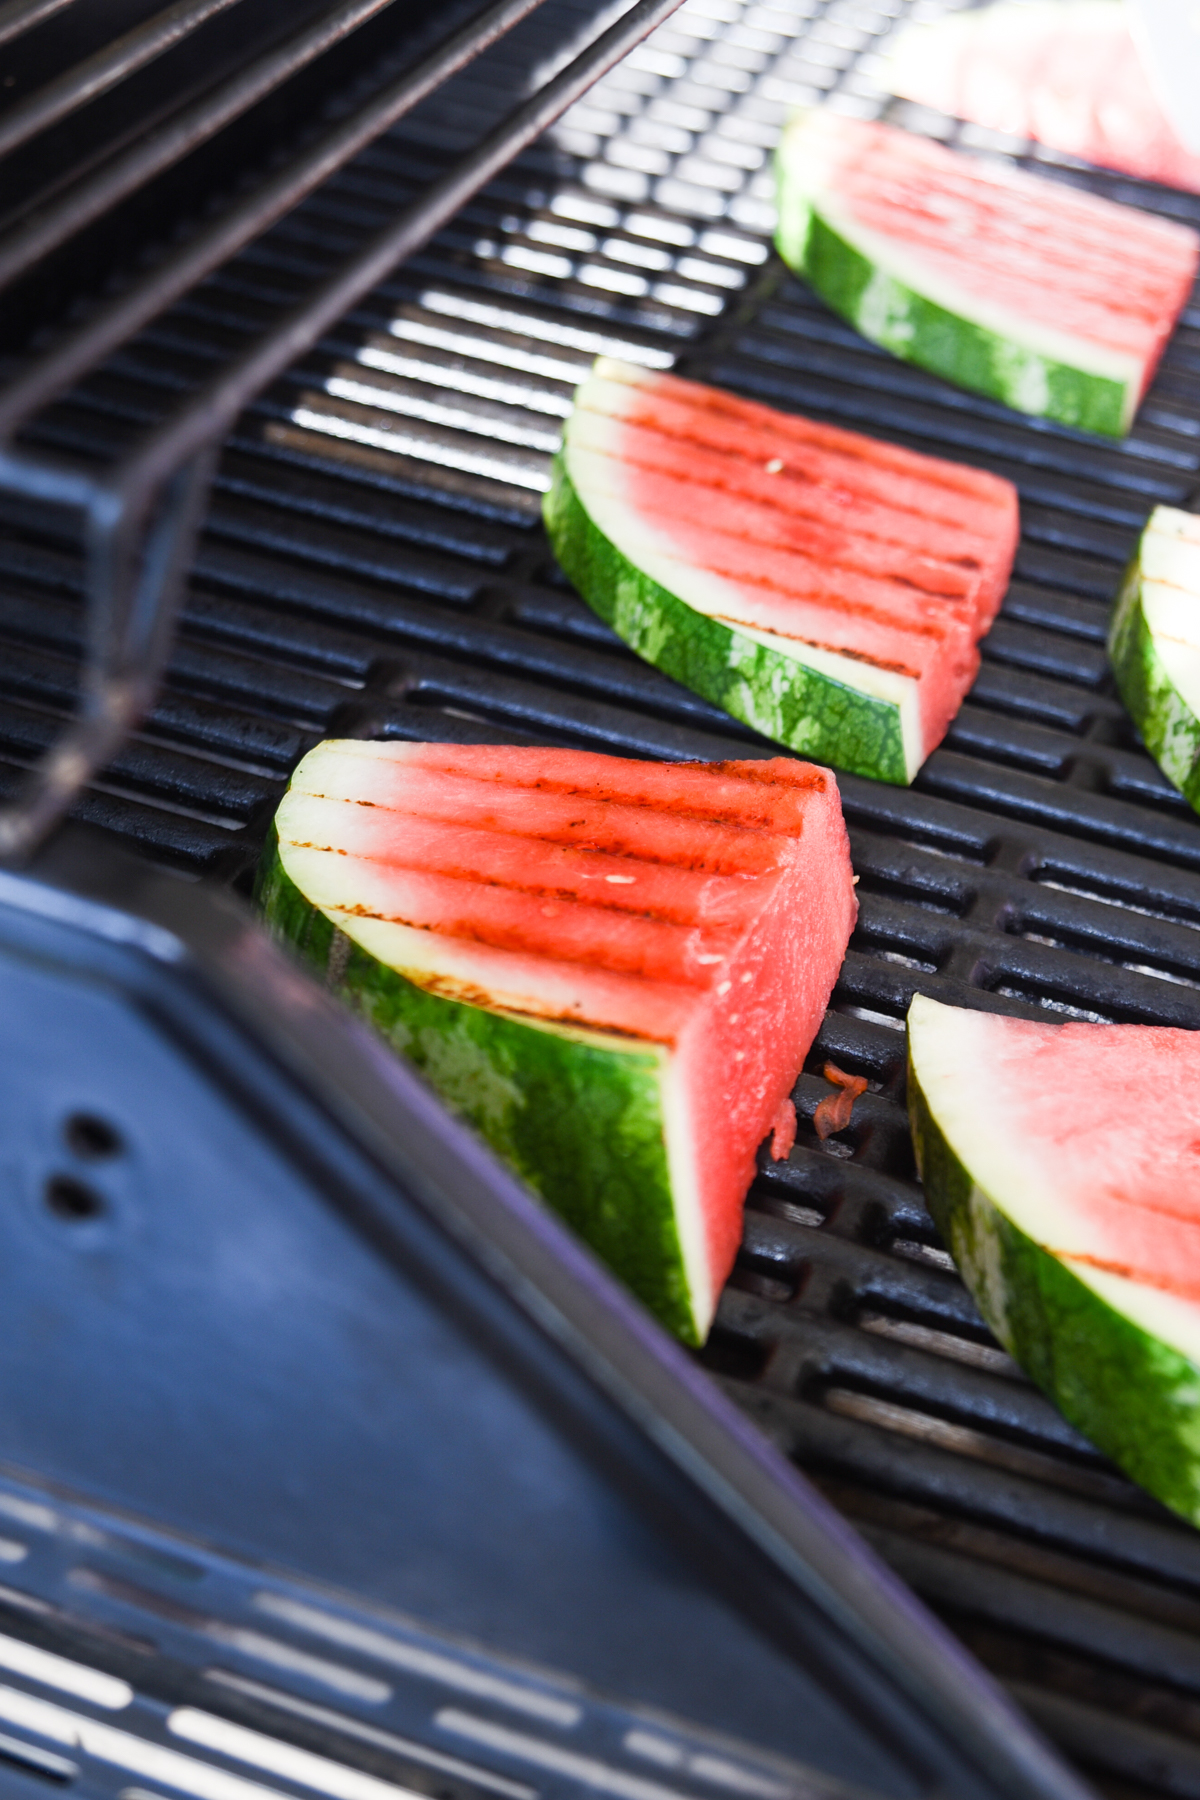 Slices of watermelon on a grill with grill marks